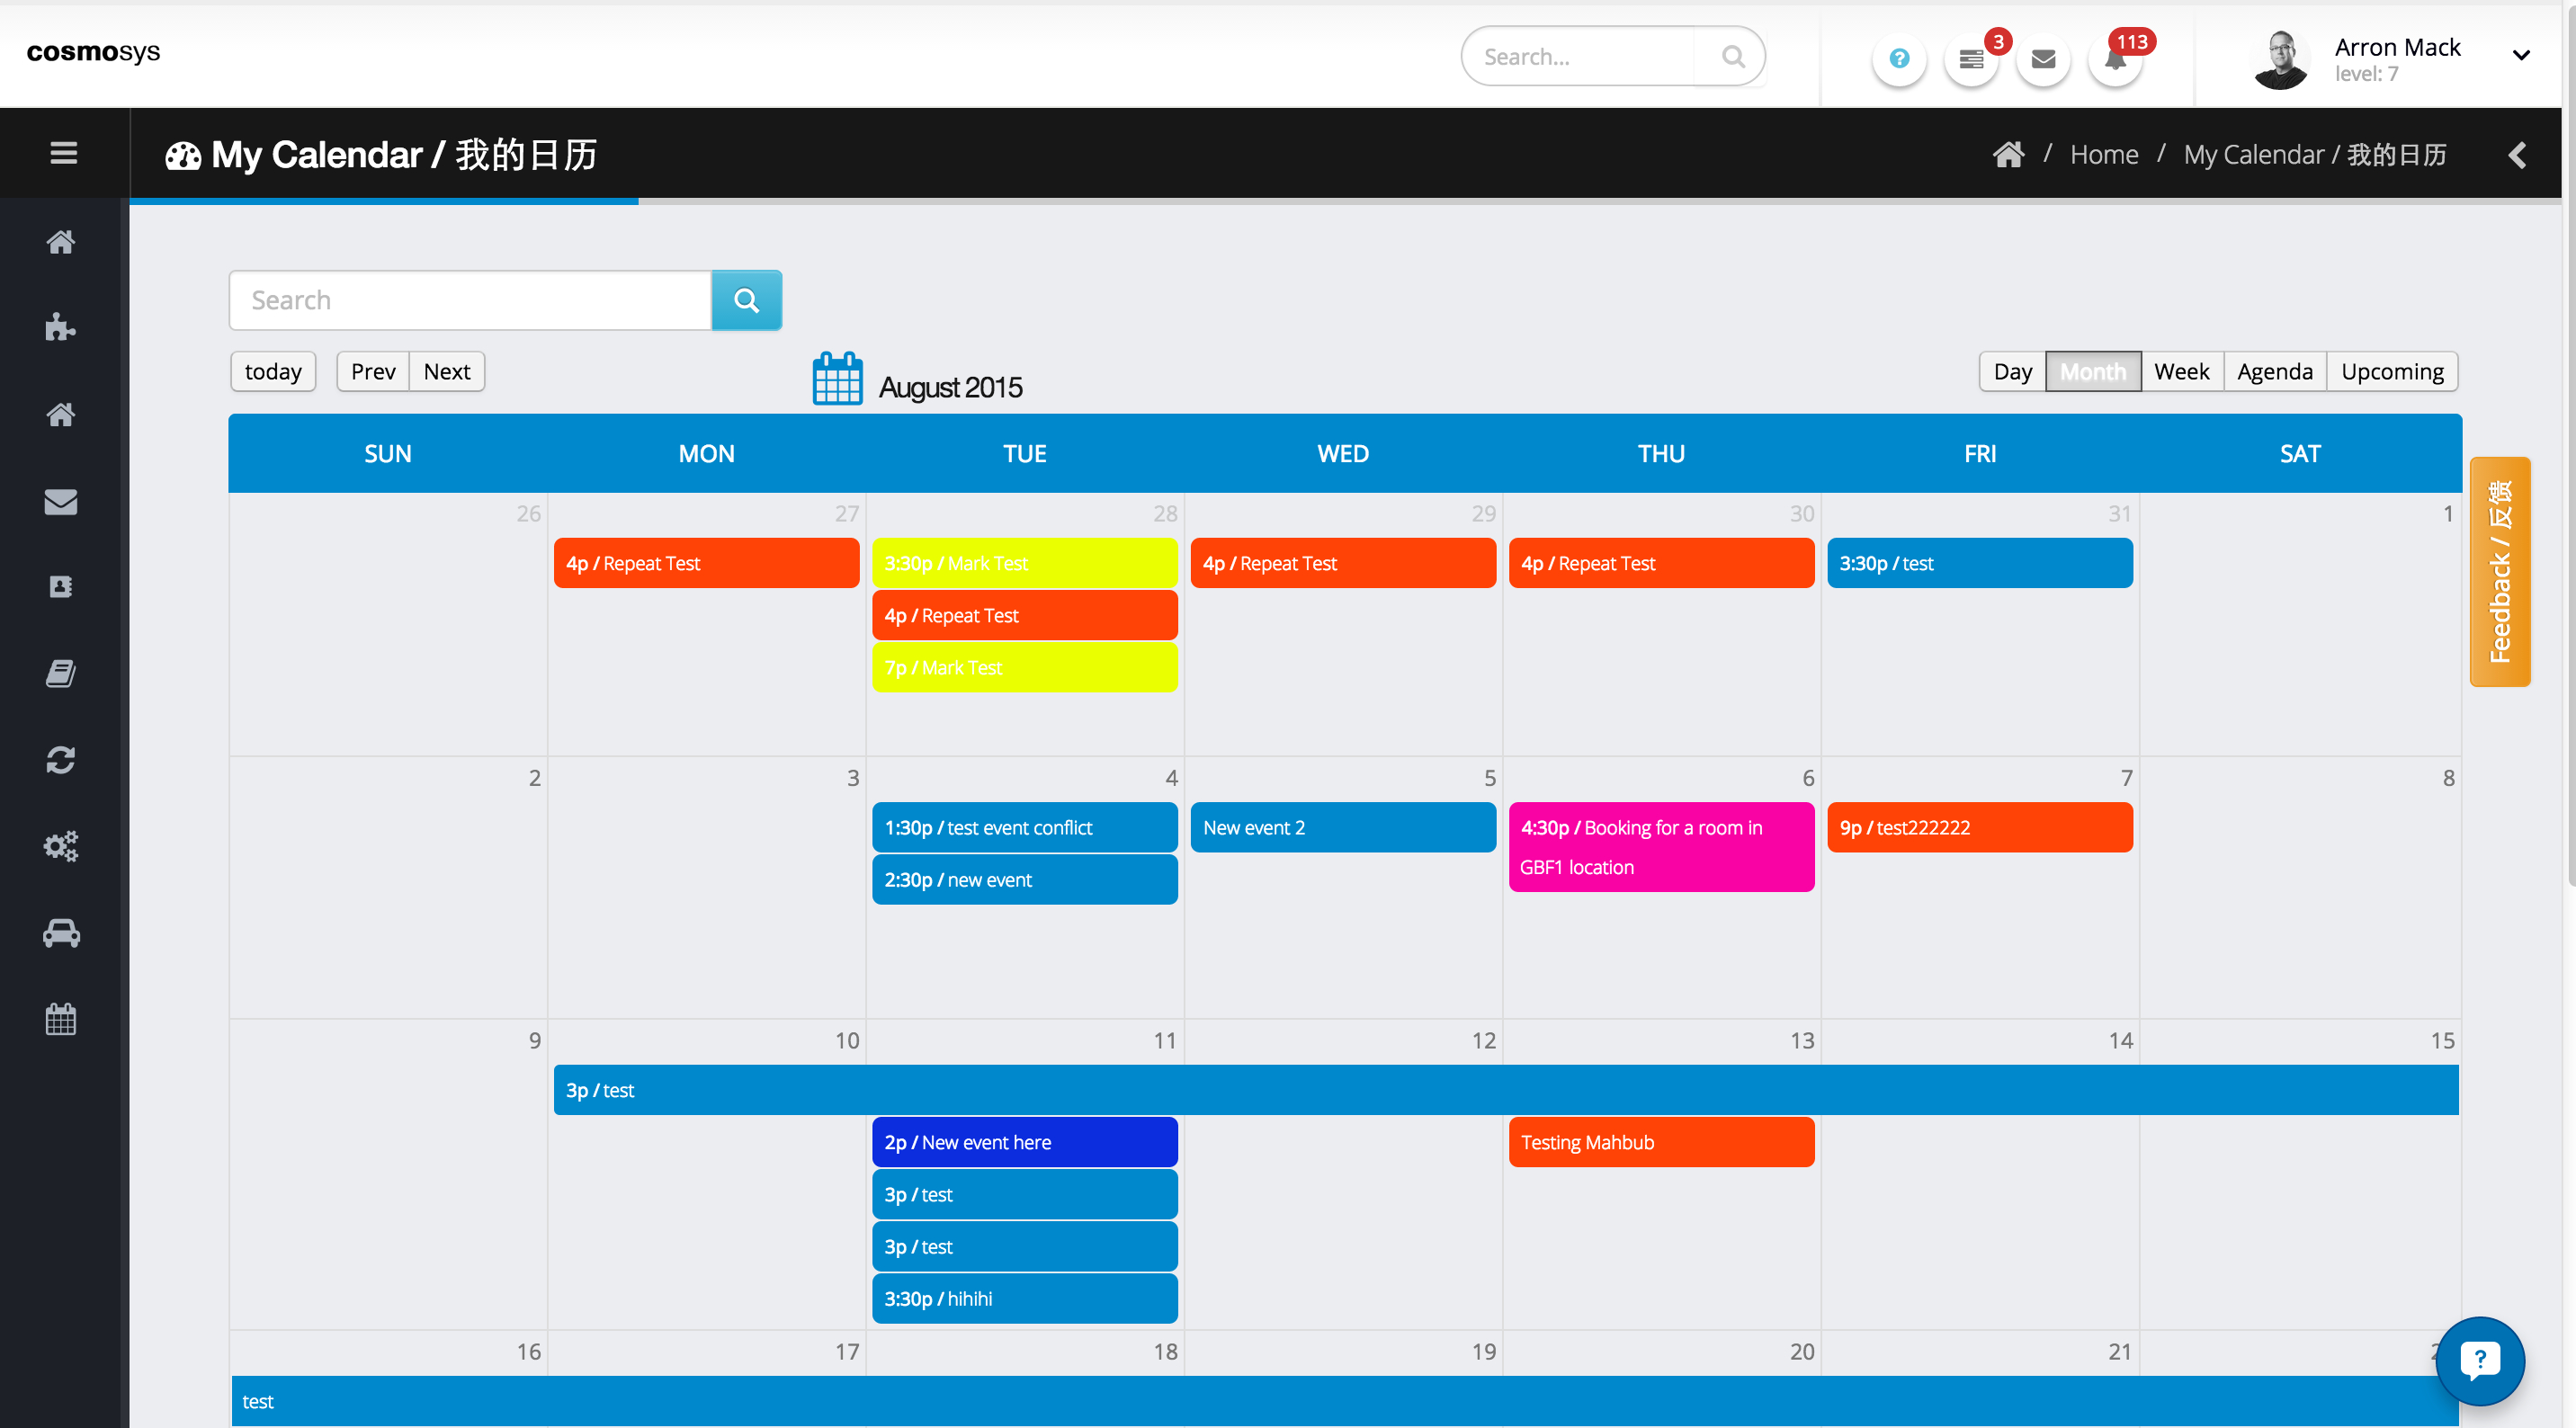 Php Event Calendar  Host Your Own Event Calendar In Minutes. pertaining to Php Calendar Event Scheduler Code